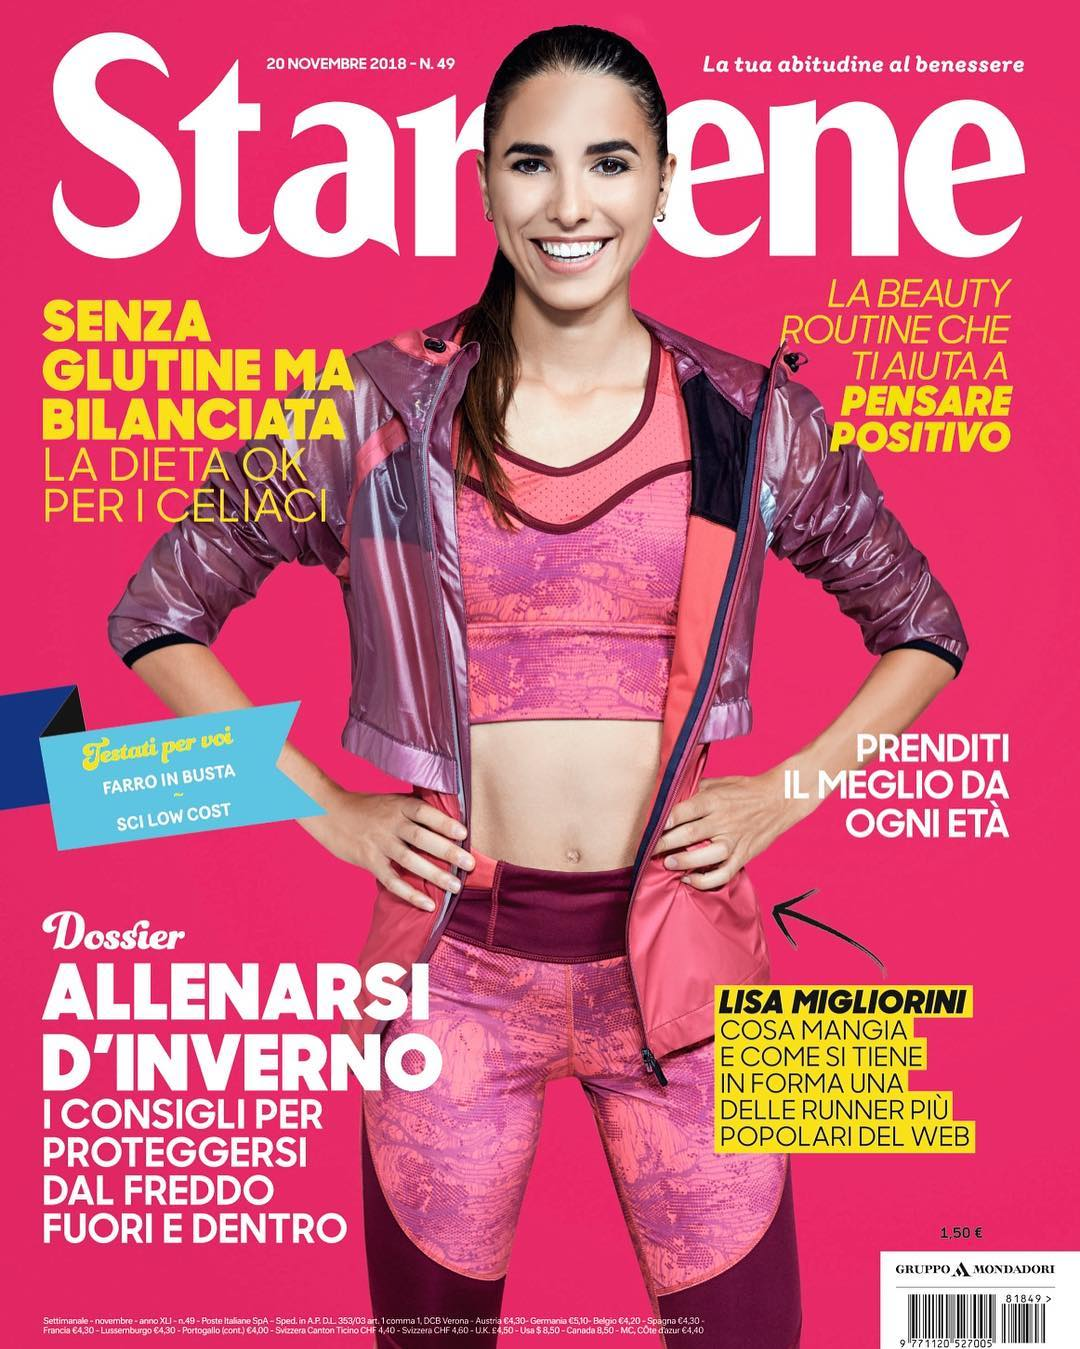 StarBene Lisa Migliorini The Fashion Jogger